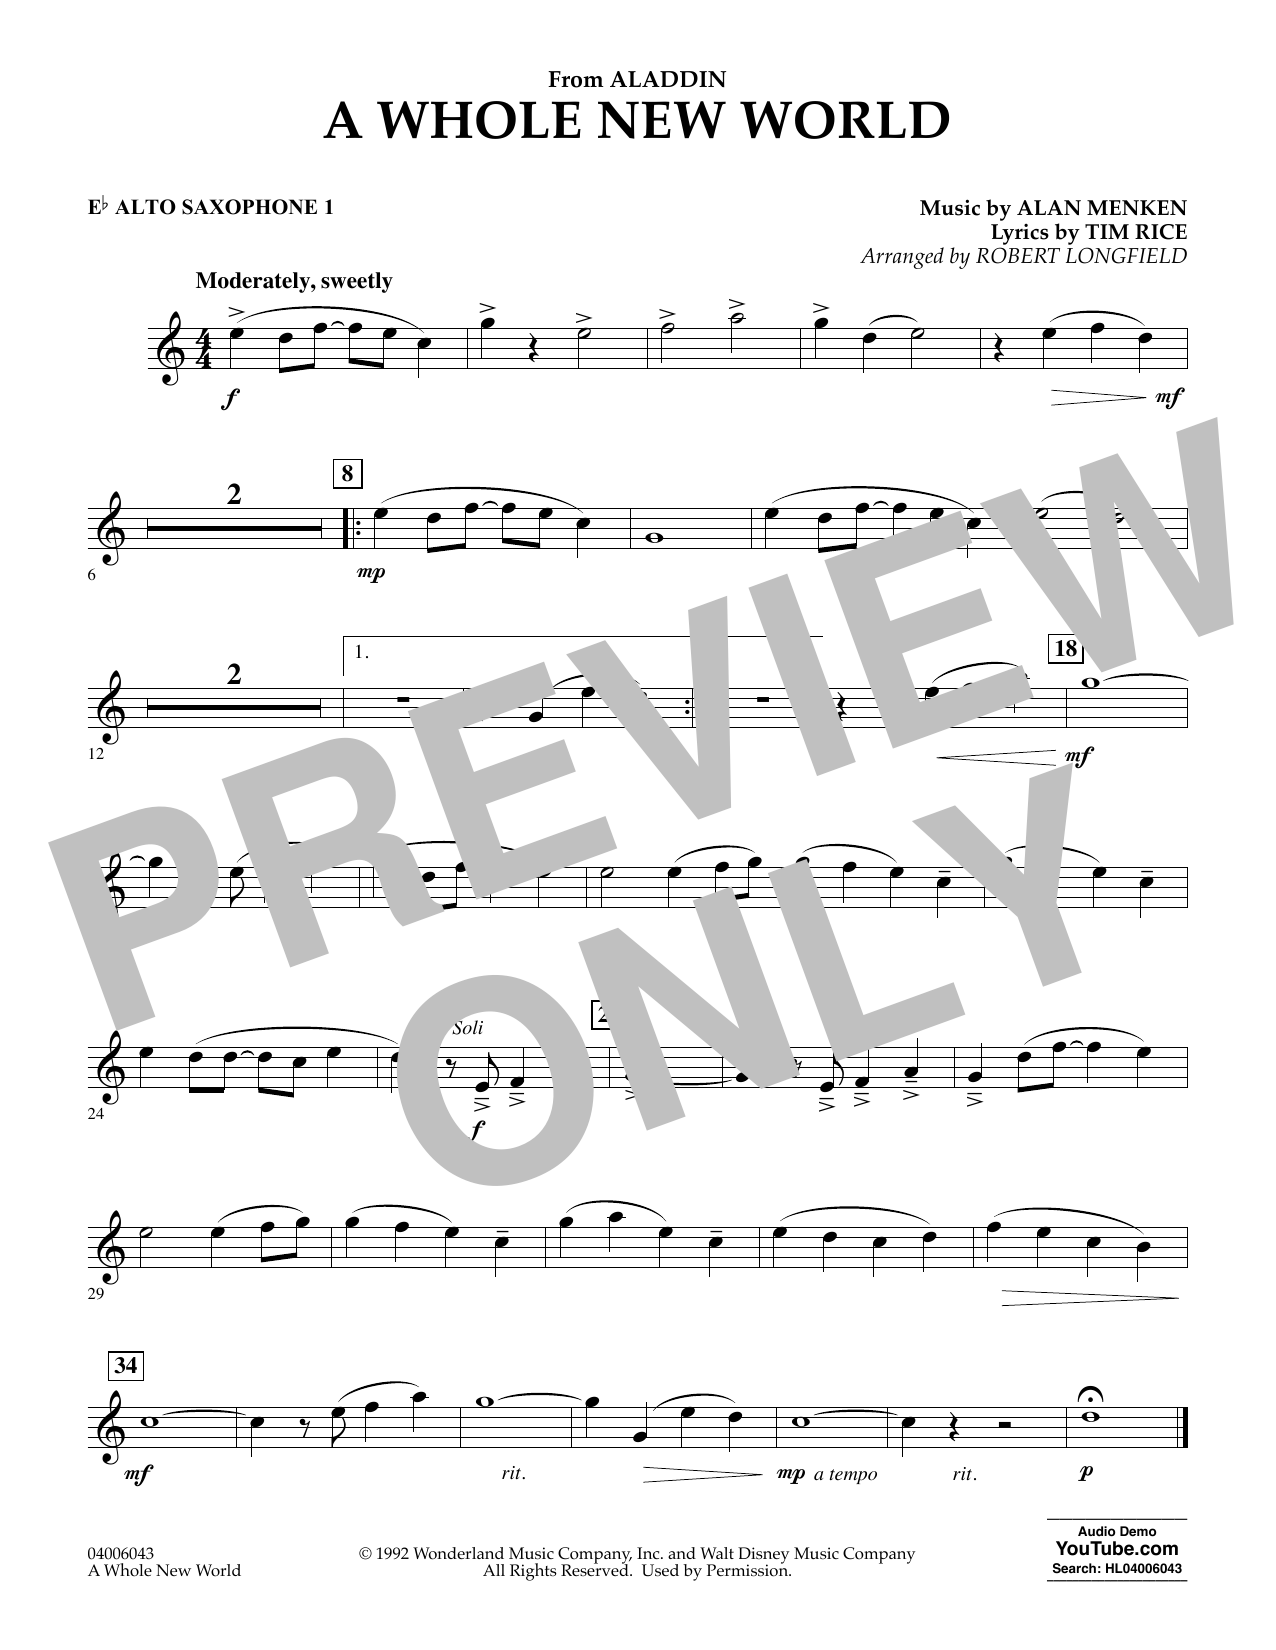 Download Alan Menken 'A Whole New World (from Aladdin) (arr. Robert Longfield) - Eb Alto Saxophone 1' Digital Sheet Music Notes & Chords and start playing in minutes